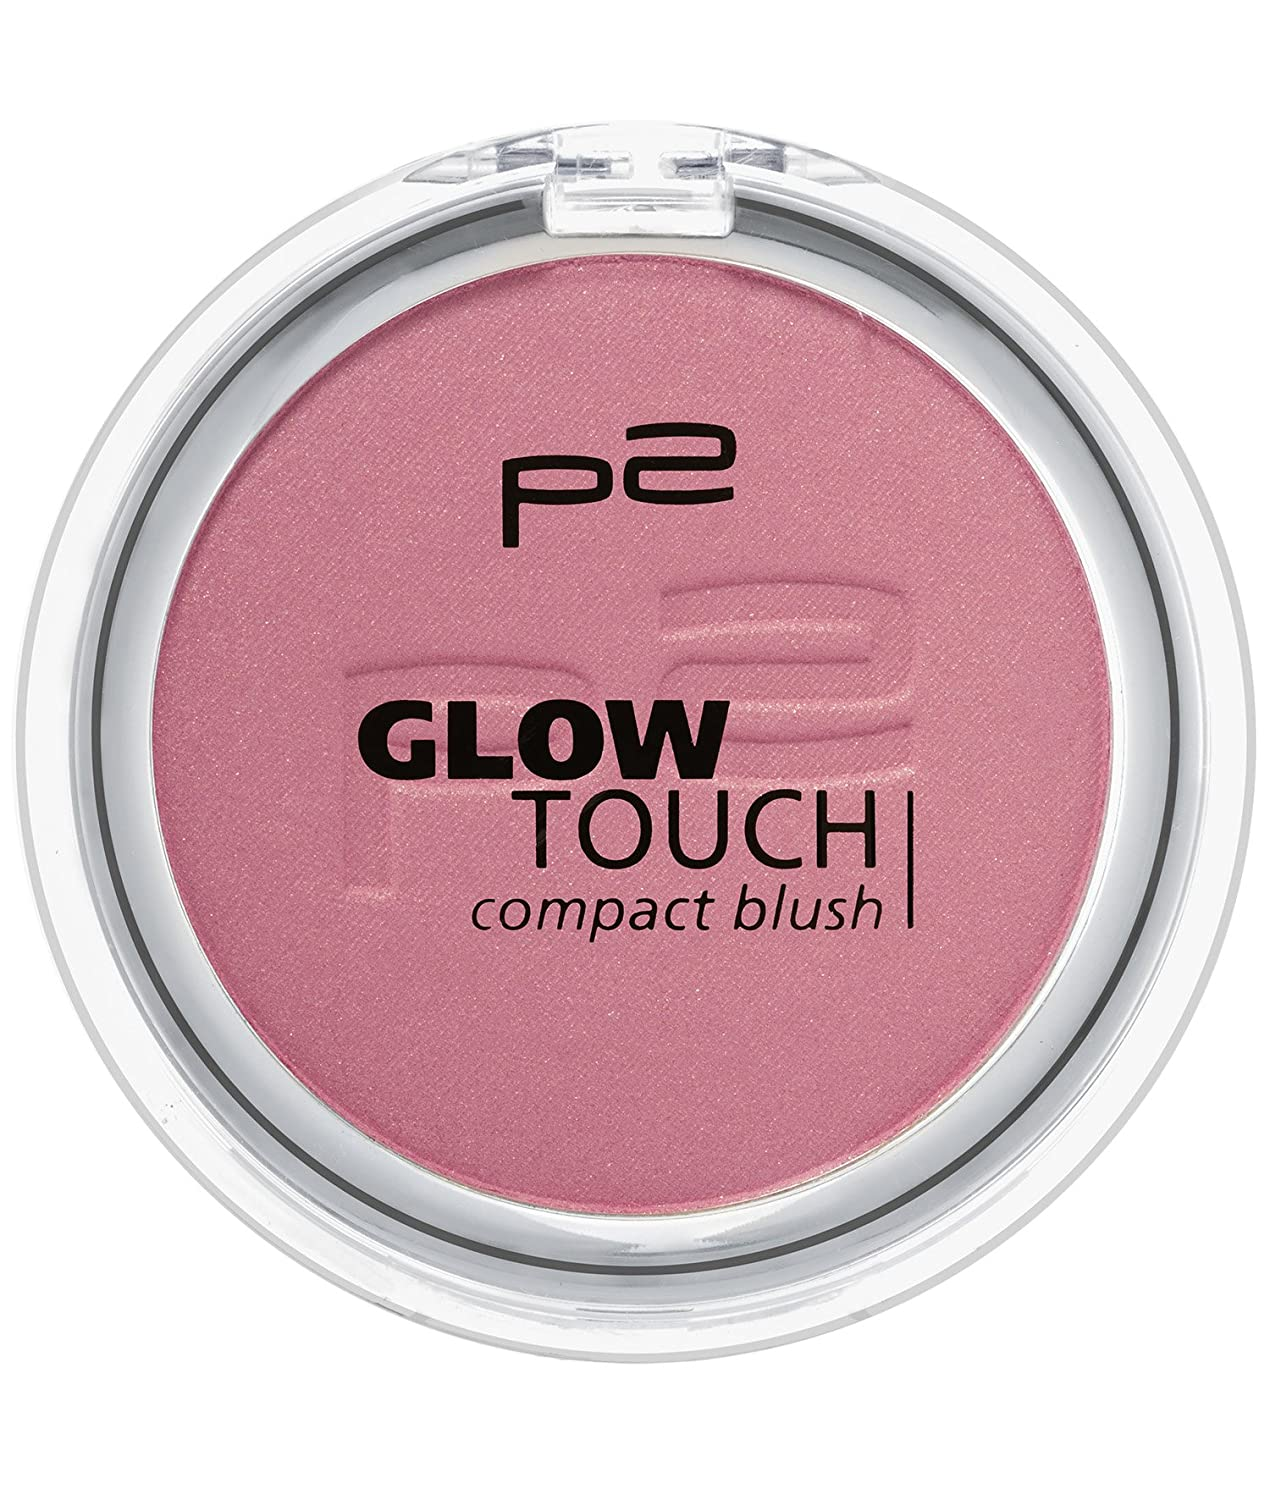 p2 cosmetics Glow Touch Compact Blush 010, 3er Pack (3 x 5 g) TPFF048/010-10